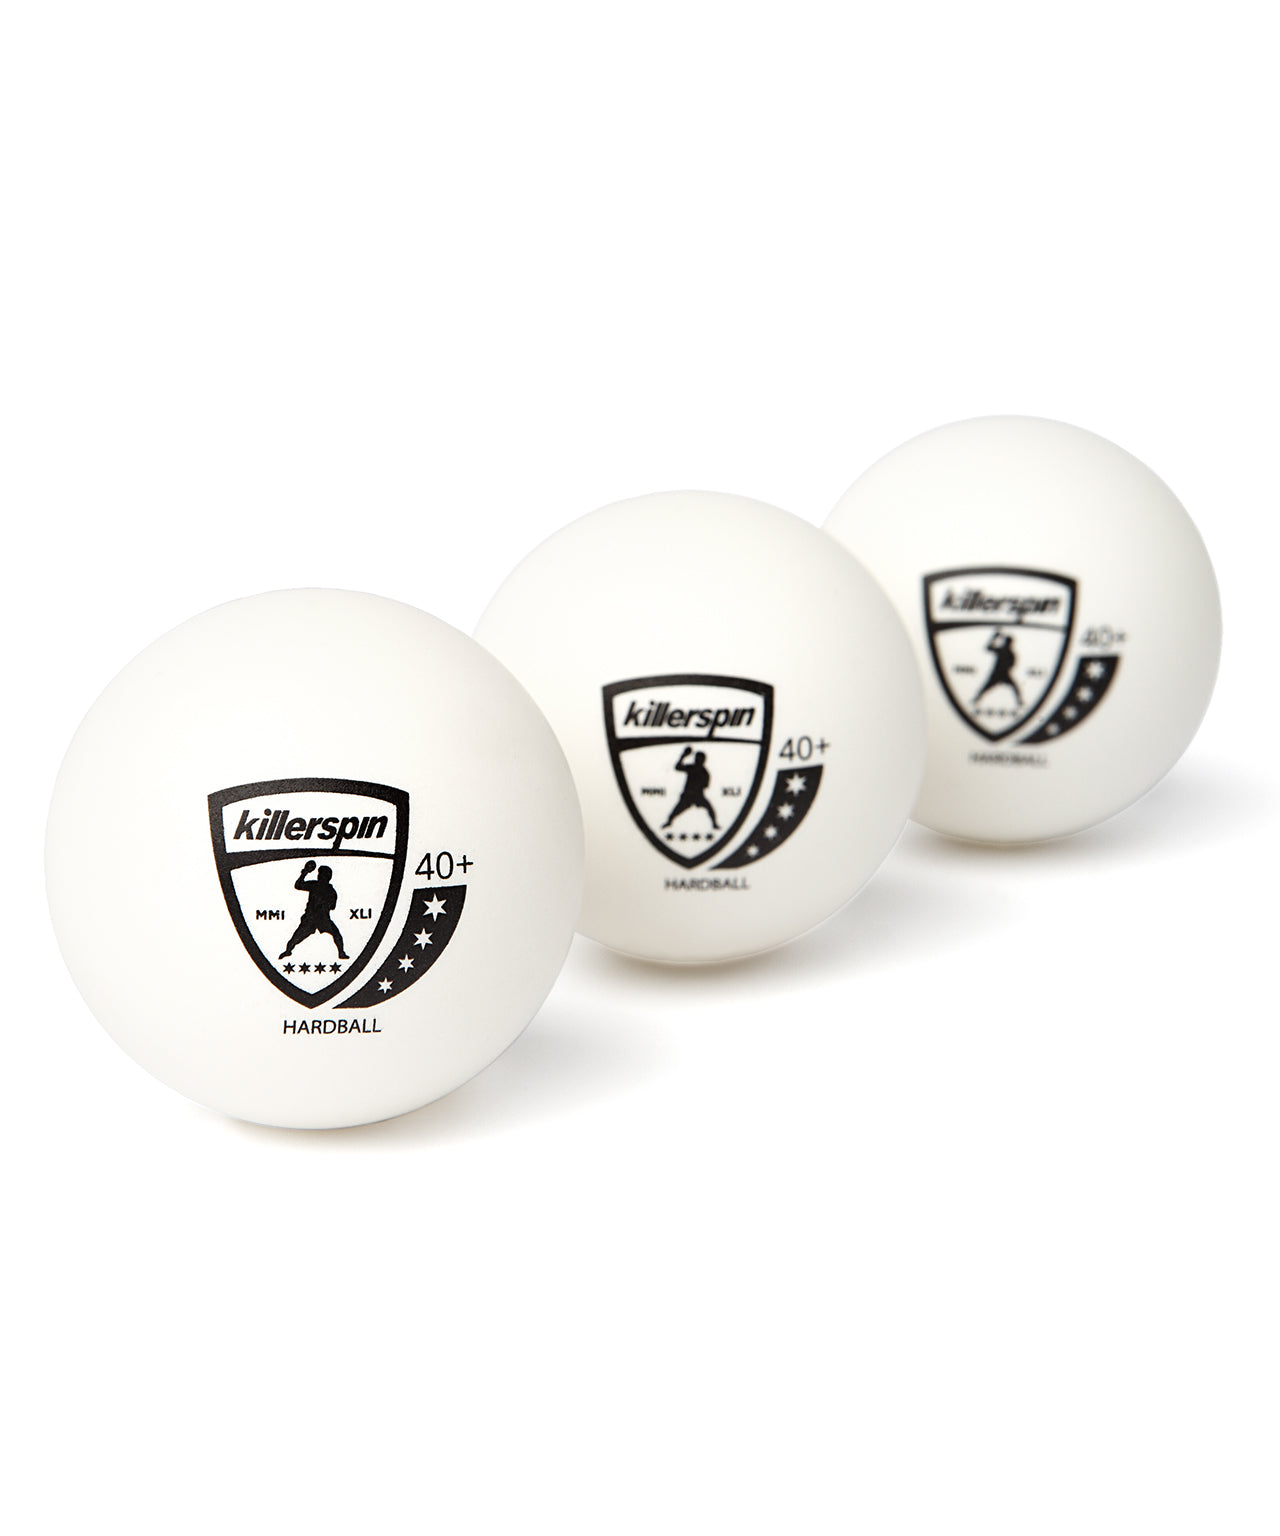 4 Star Hardball 40+ (White)